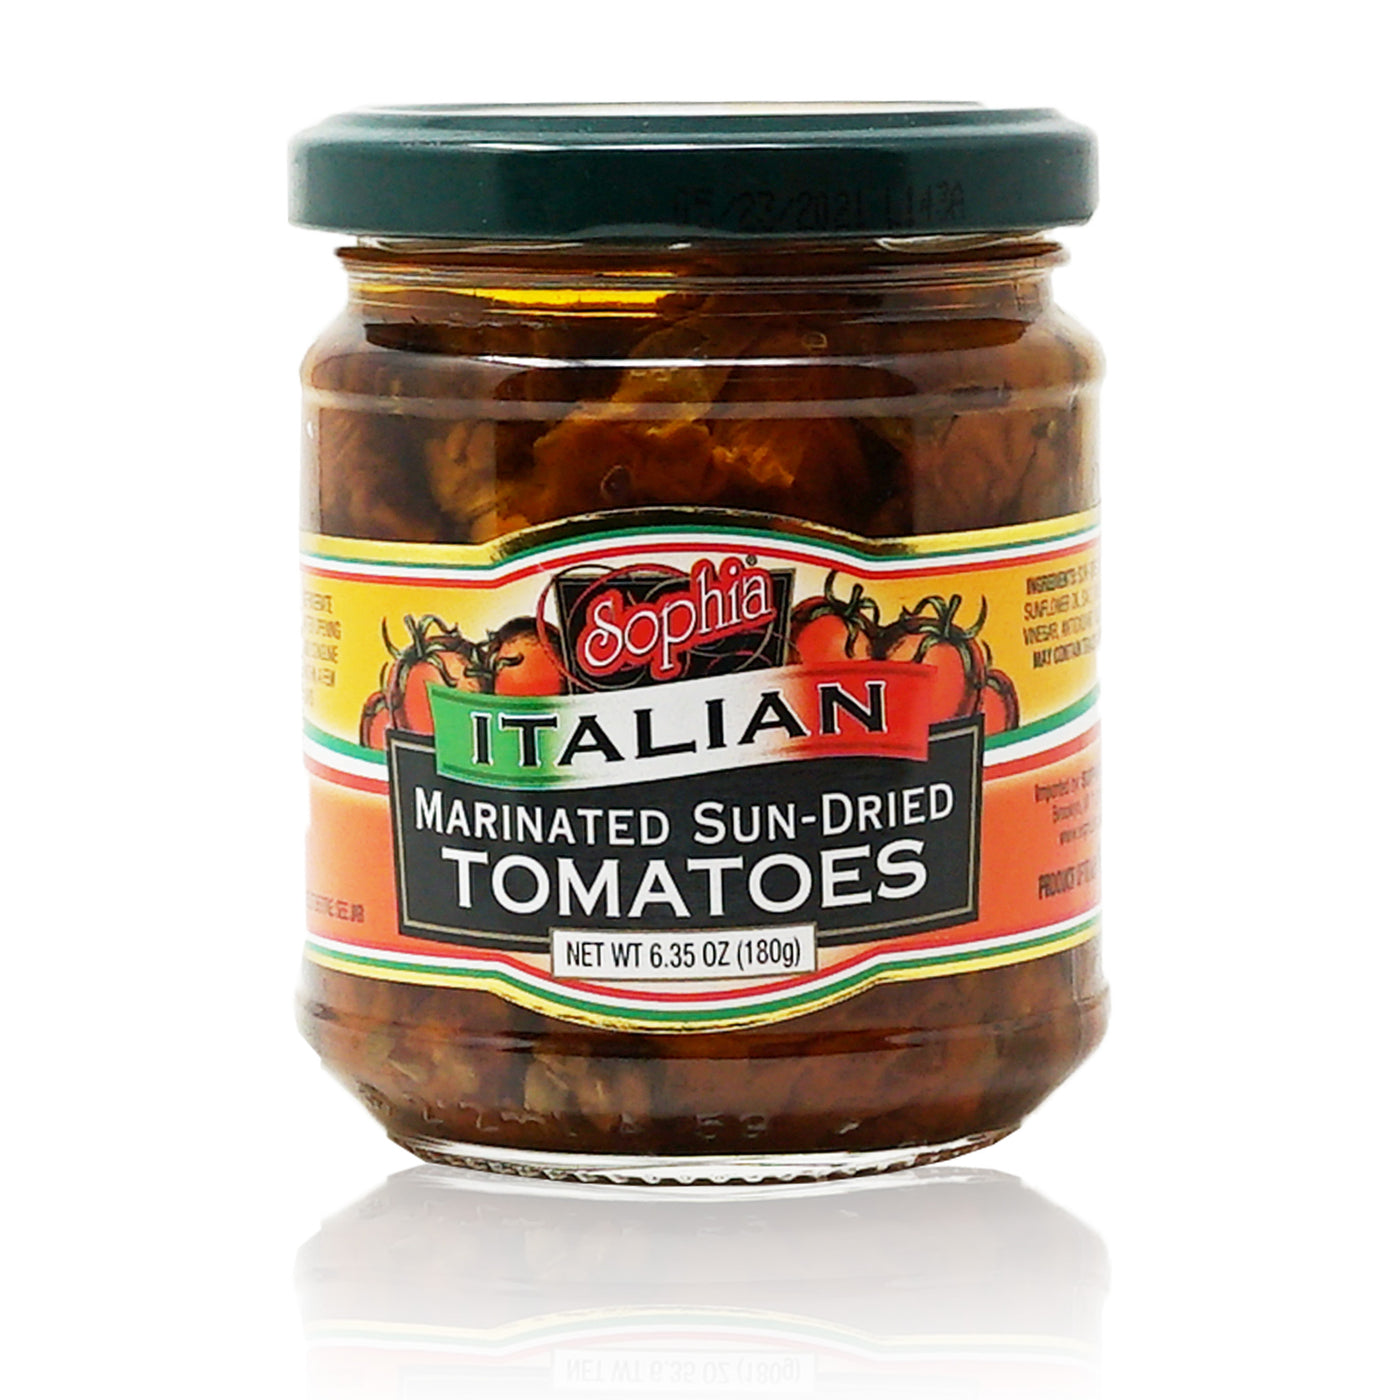 Sophia Italian Marinated Sundried Tomatoes 6.35oz